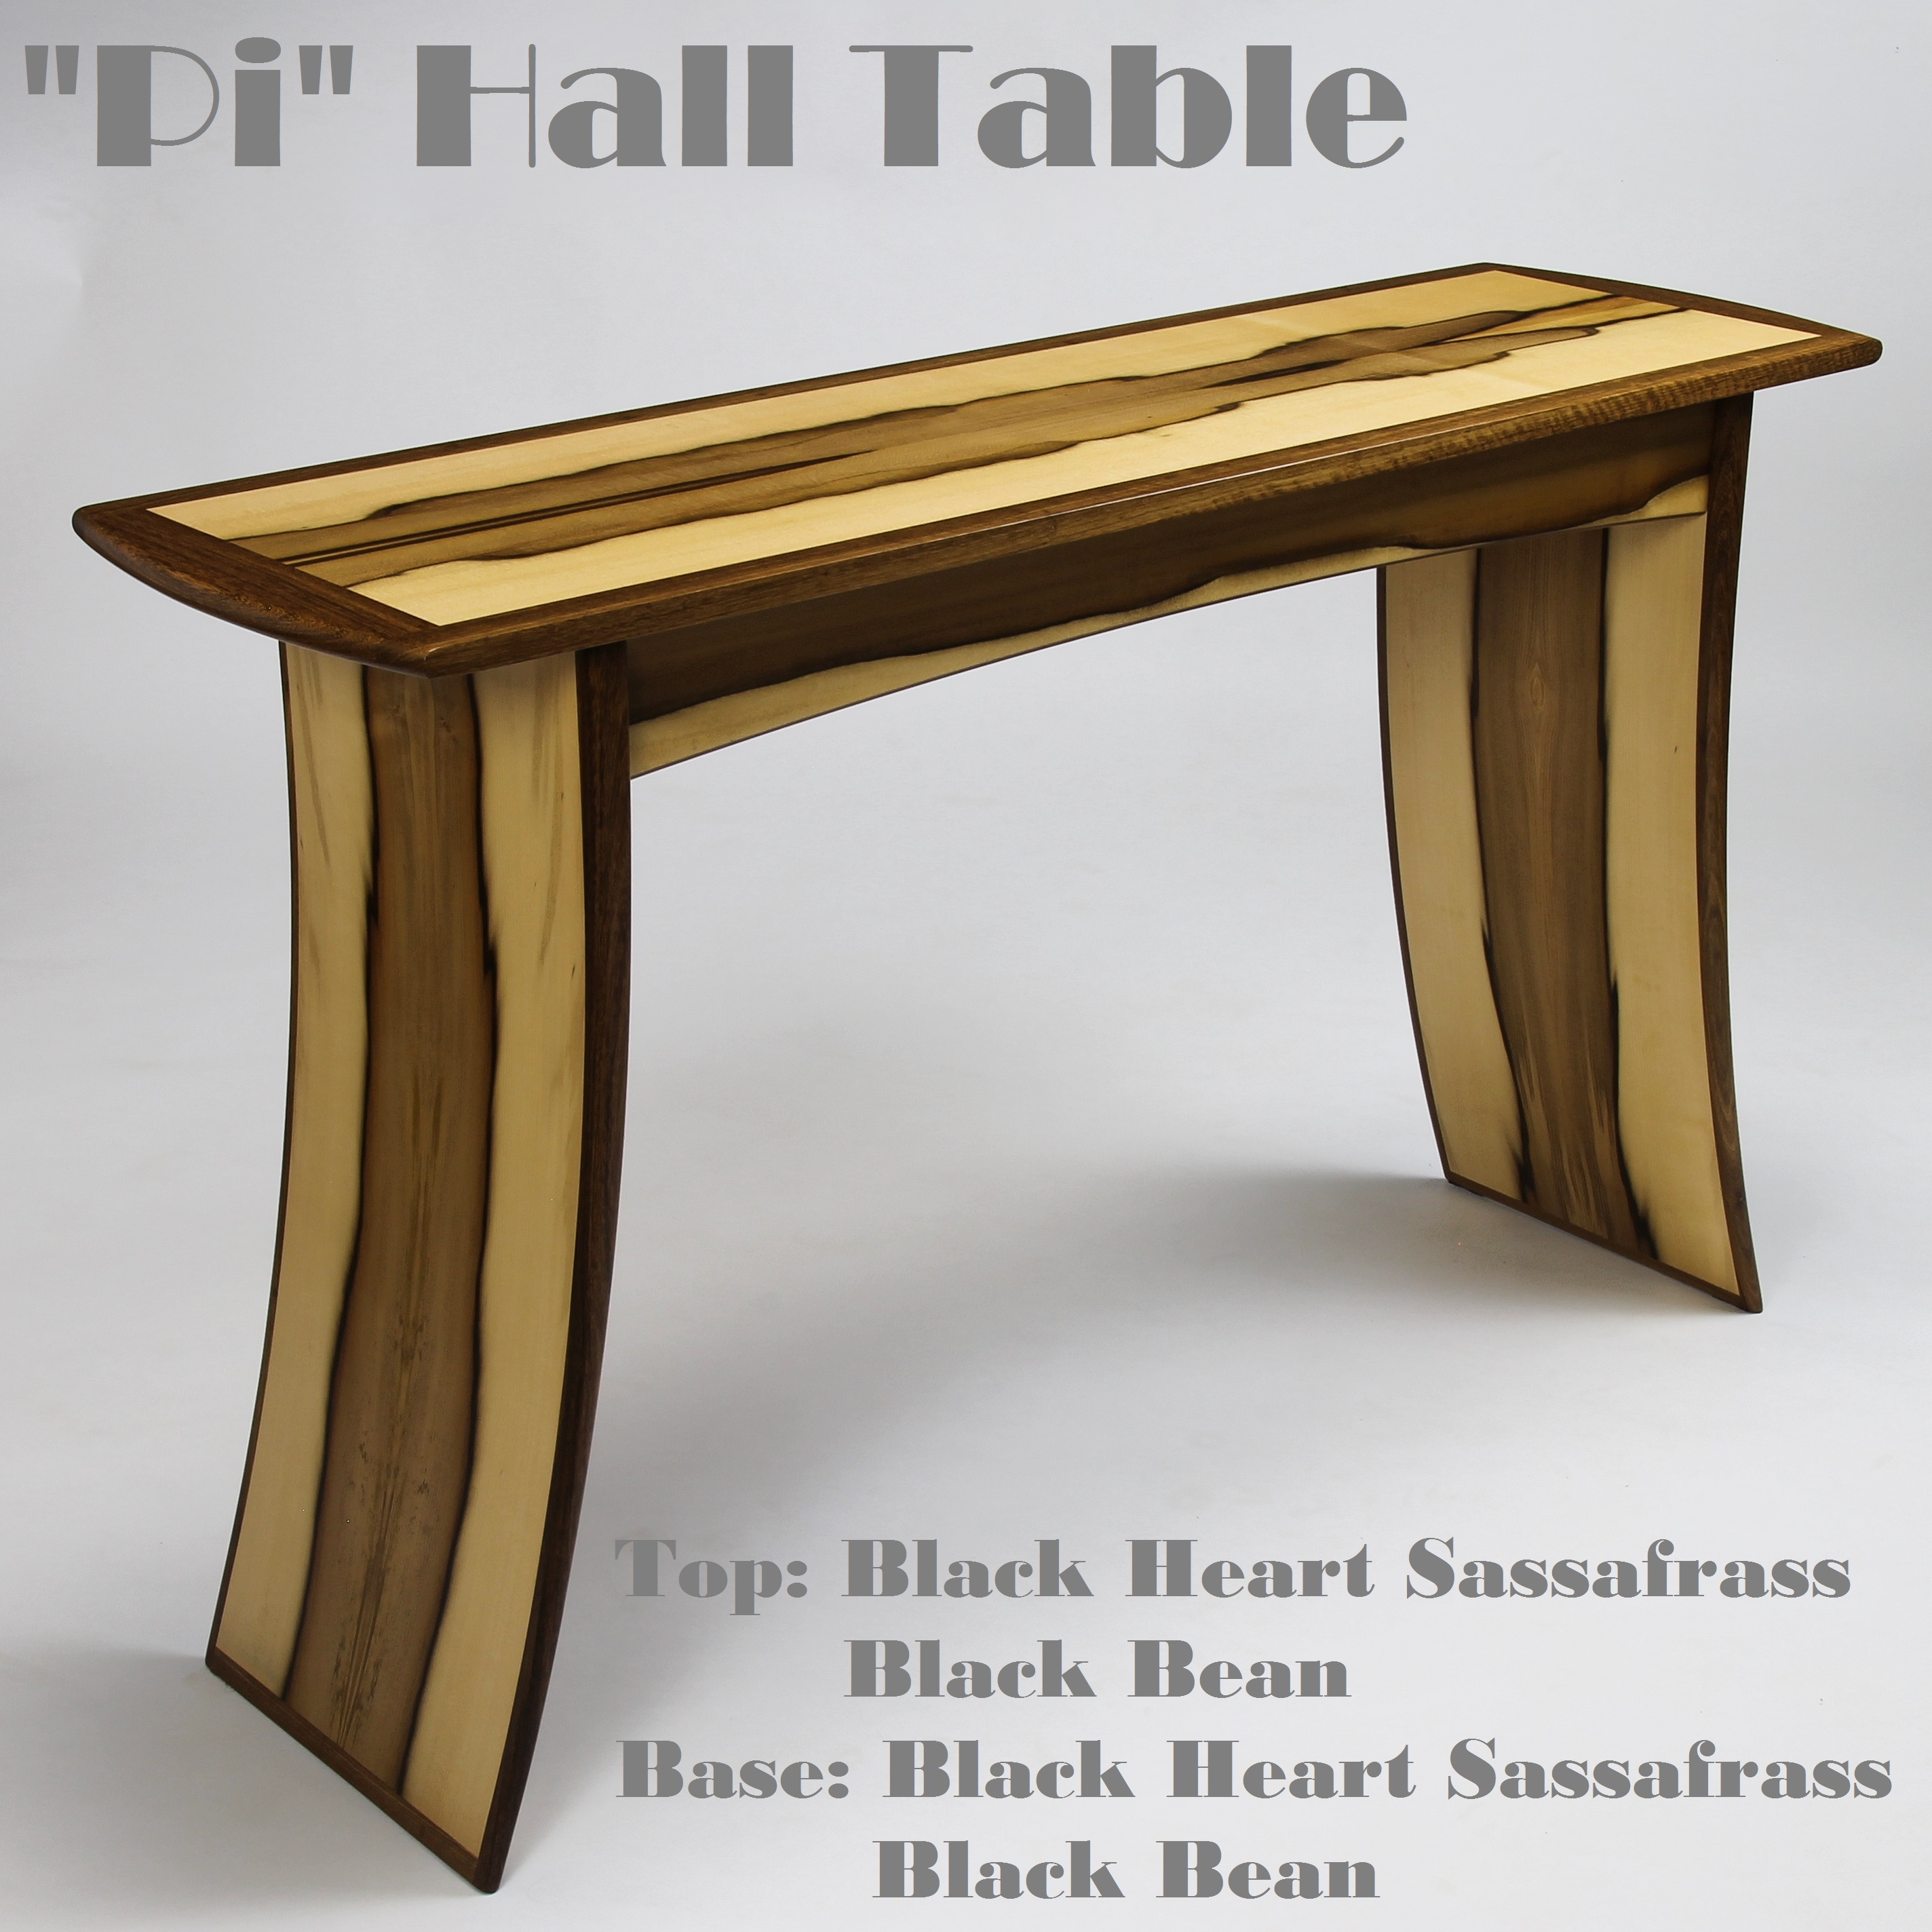 Pi Hall Table Website 1